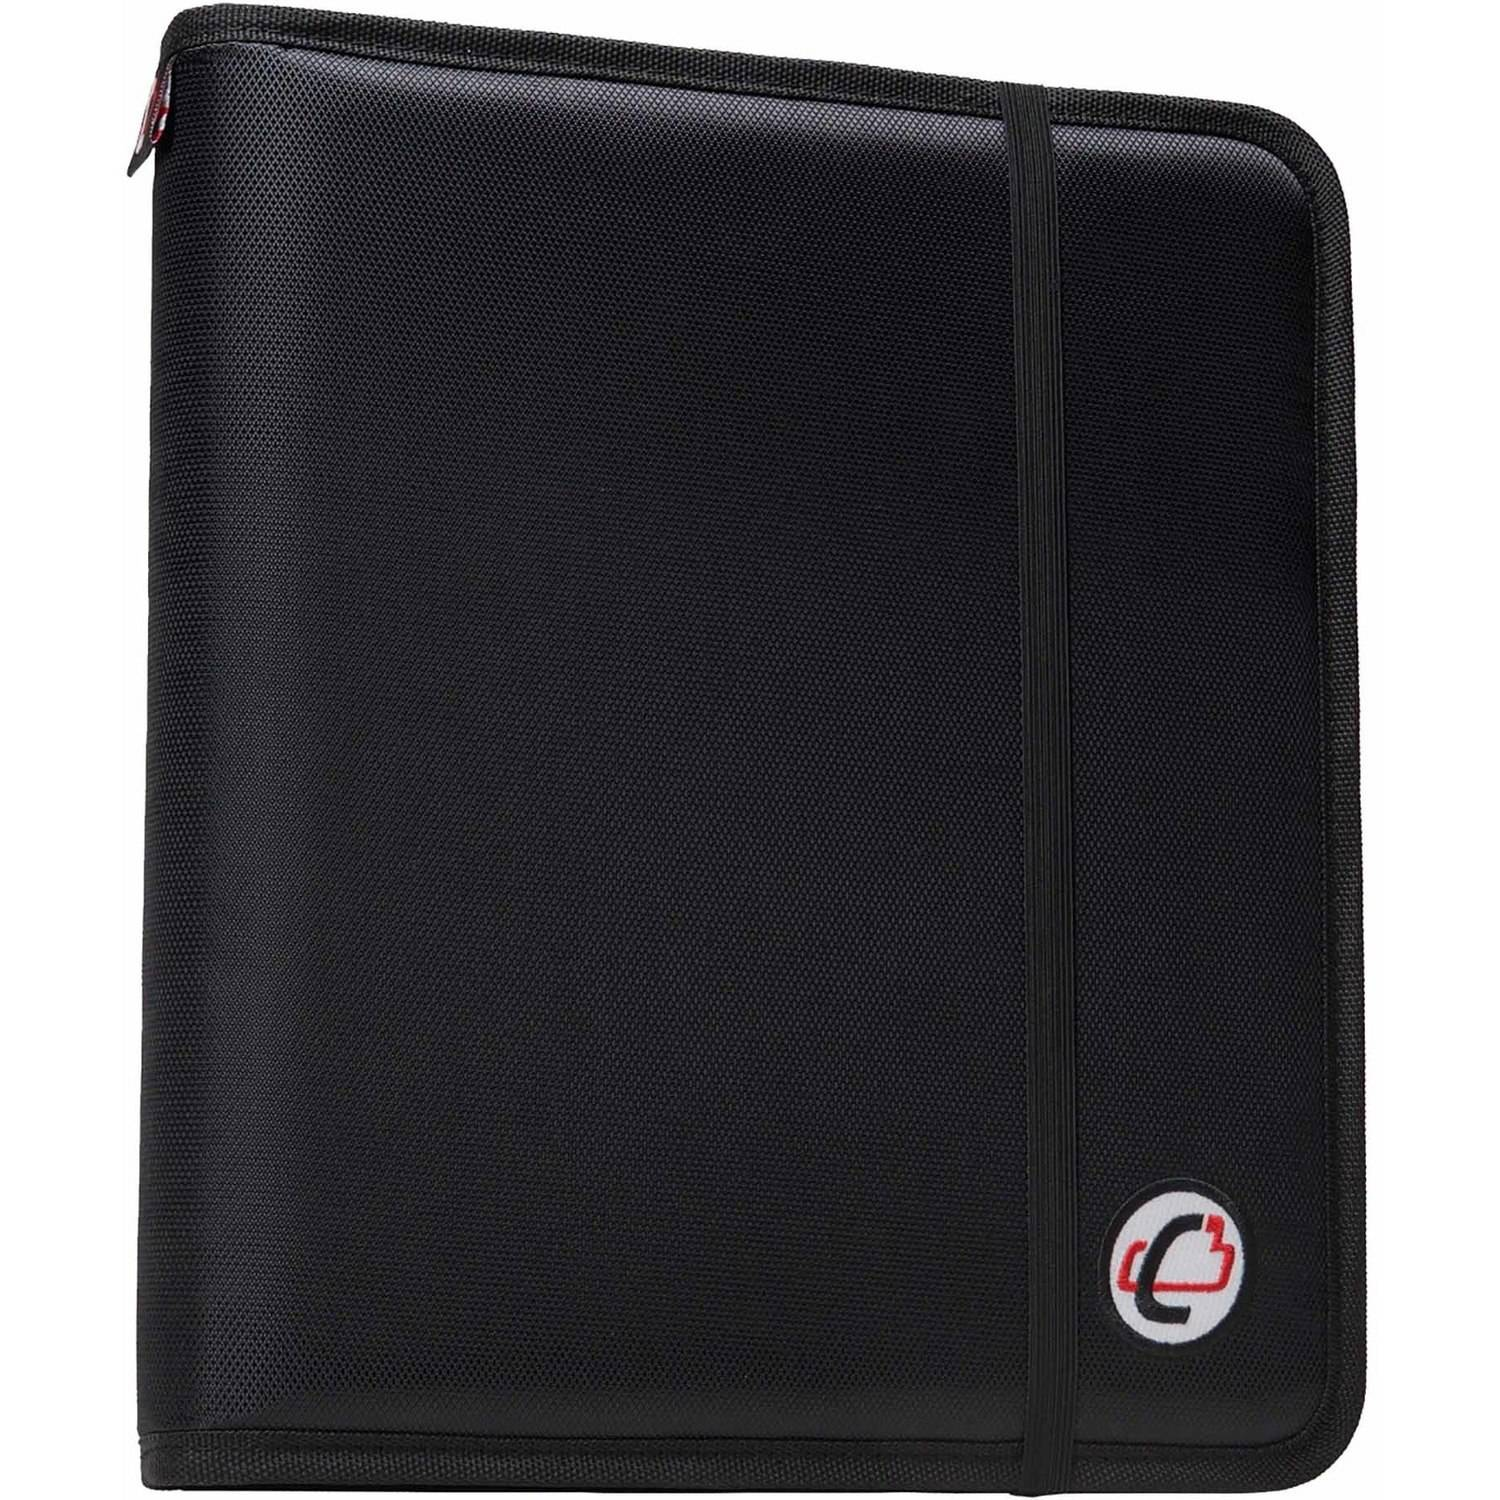 Case-It Slim 1-Inch D-Ring Binder with Expandable File Folder, Black, SLIM-630-FN-BK by Case it, Inc.